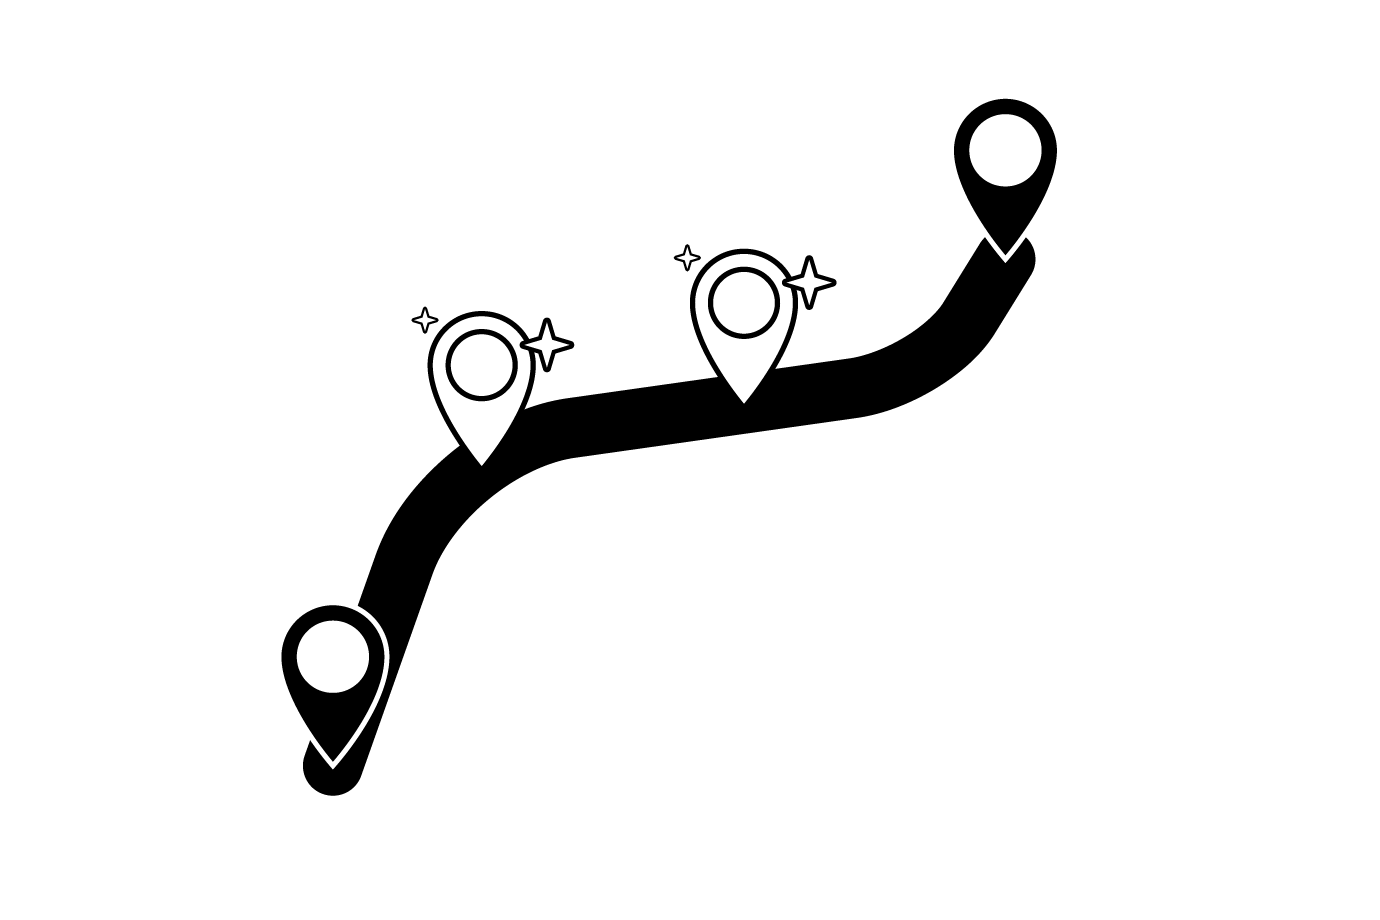 graphic indicating new stops on a route